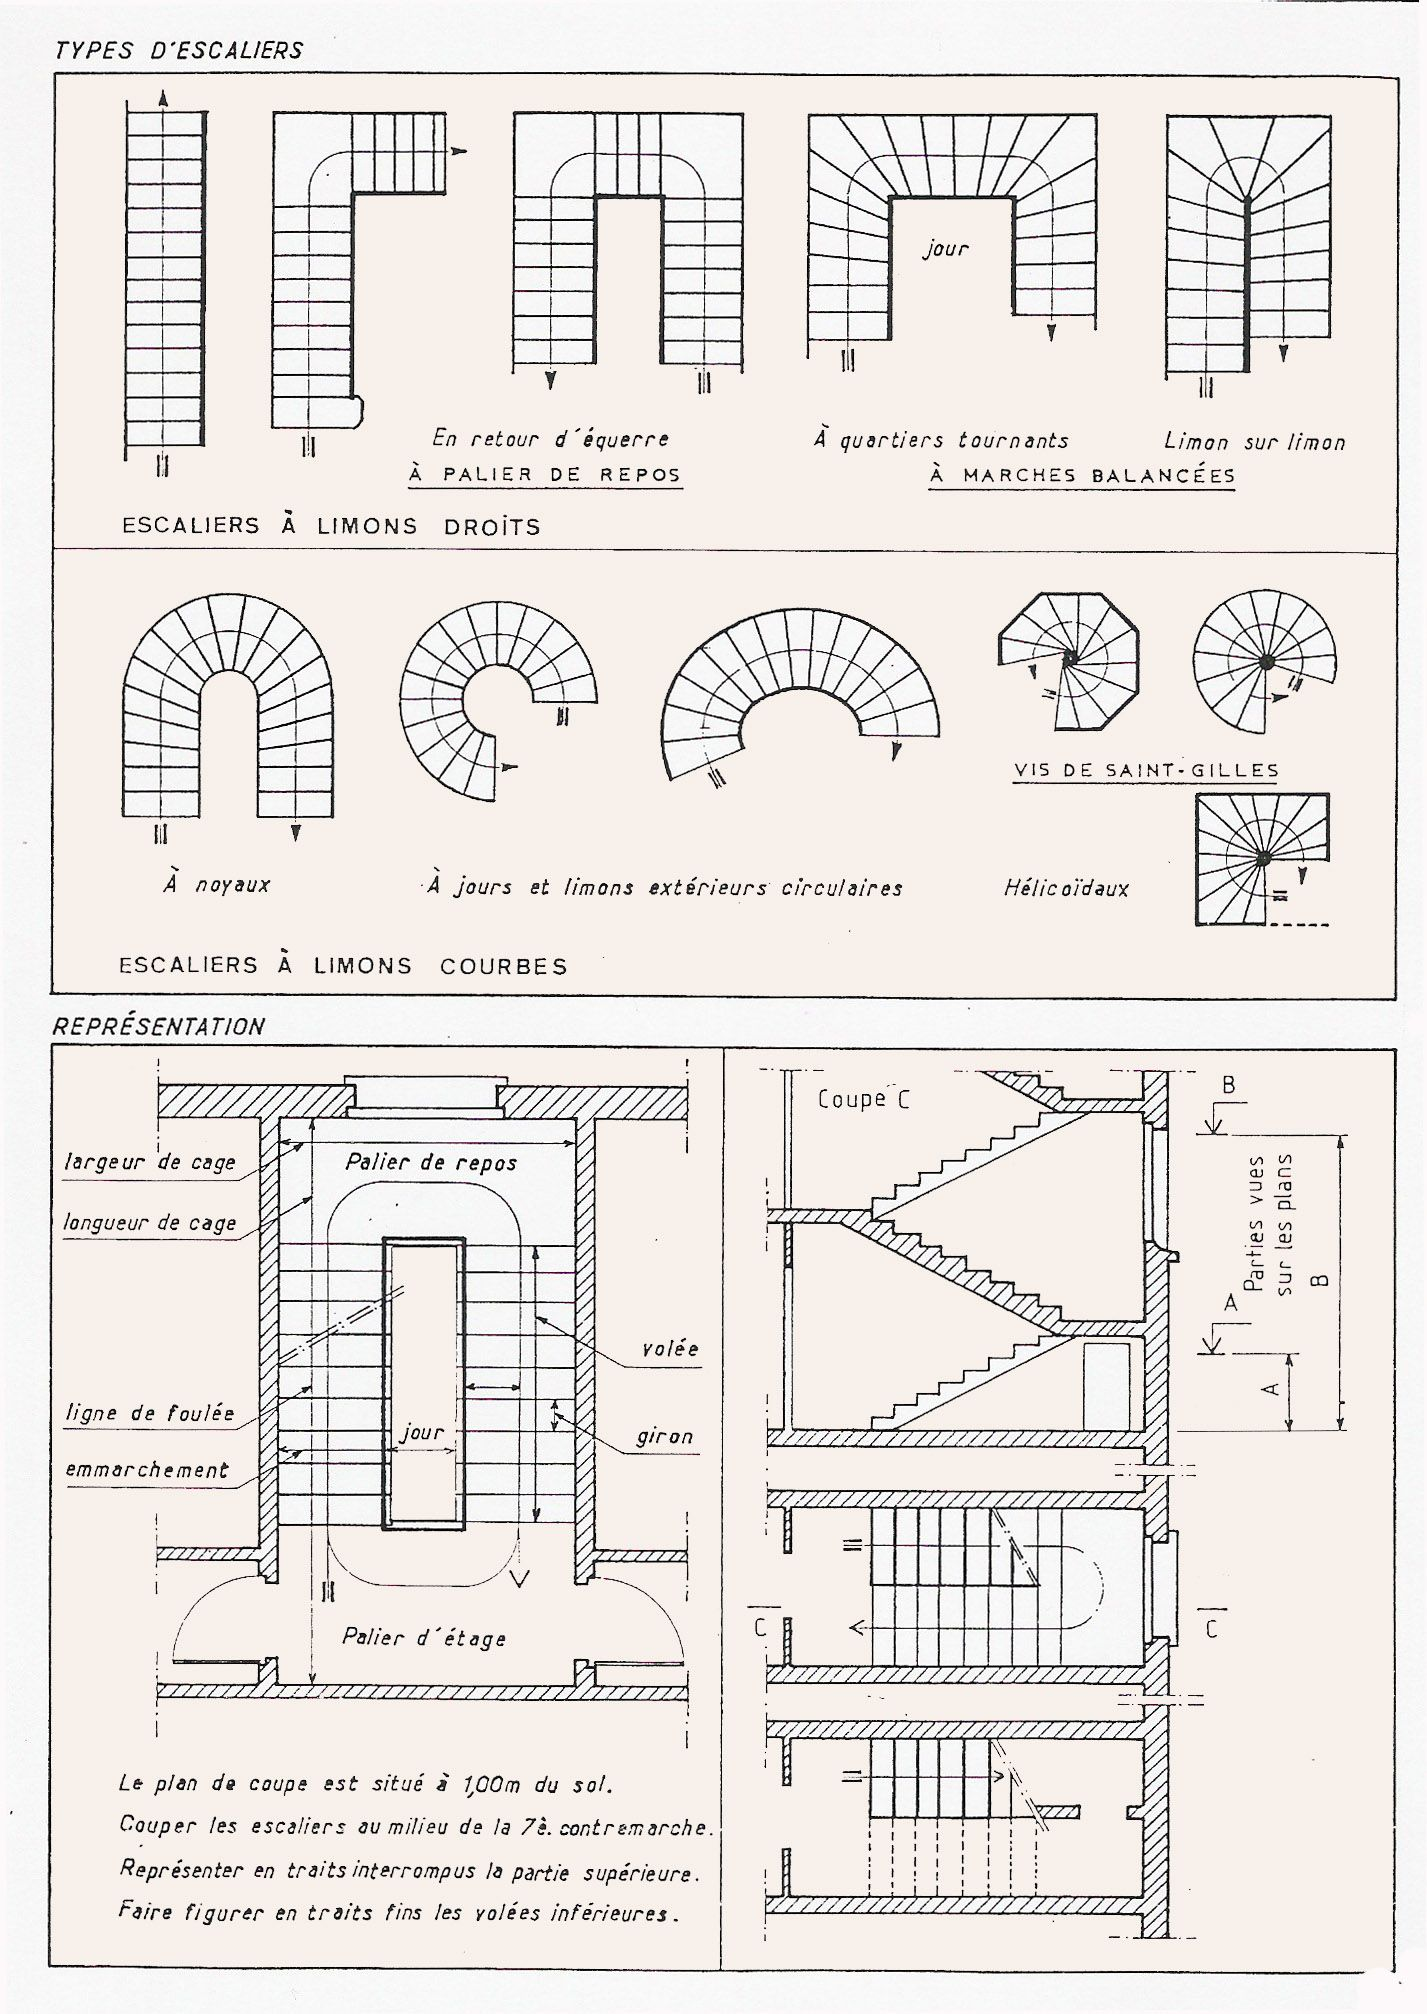 Staircase Plans Drawing Type D 39escalier Recherche Google Autocad Stairs